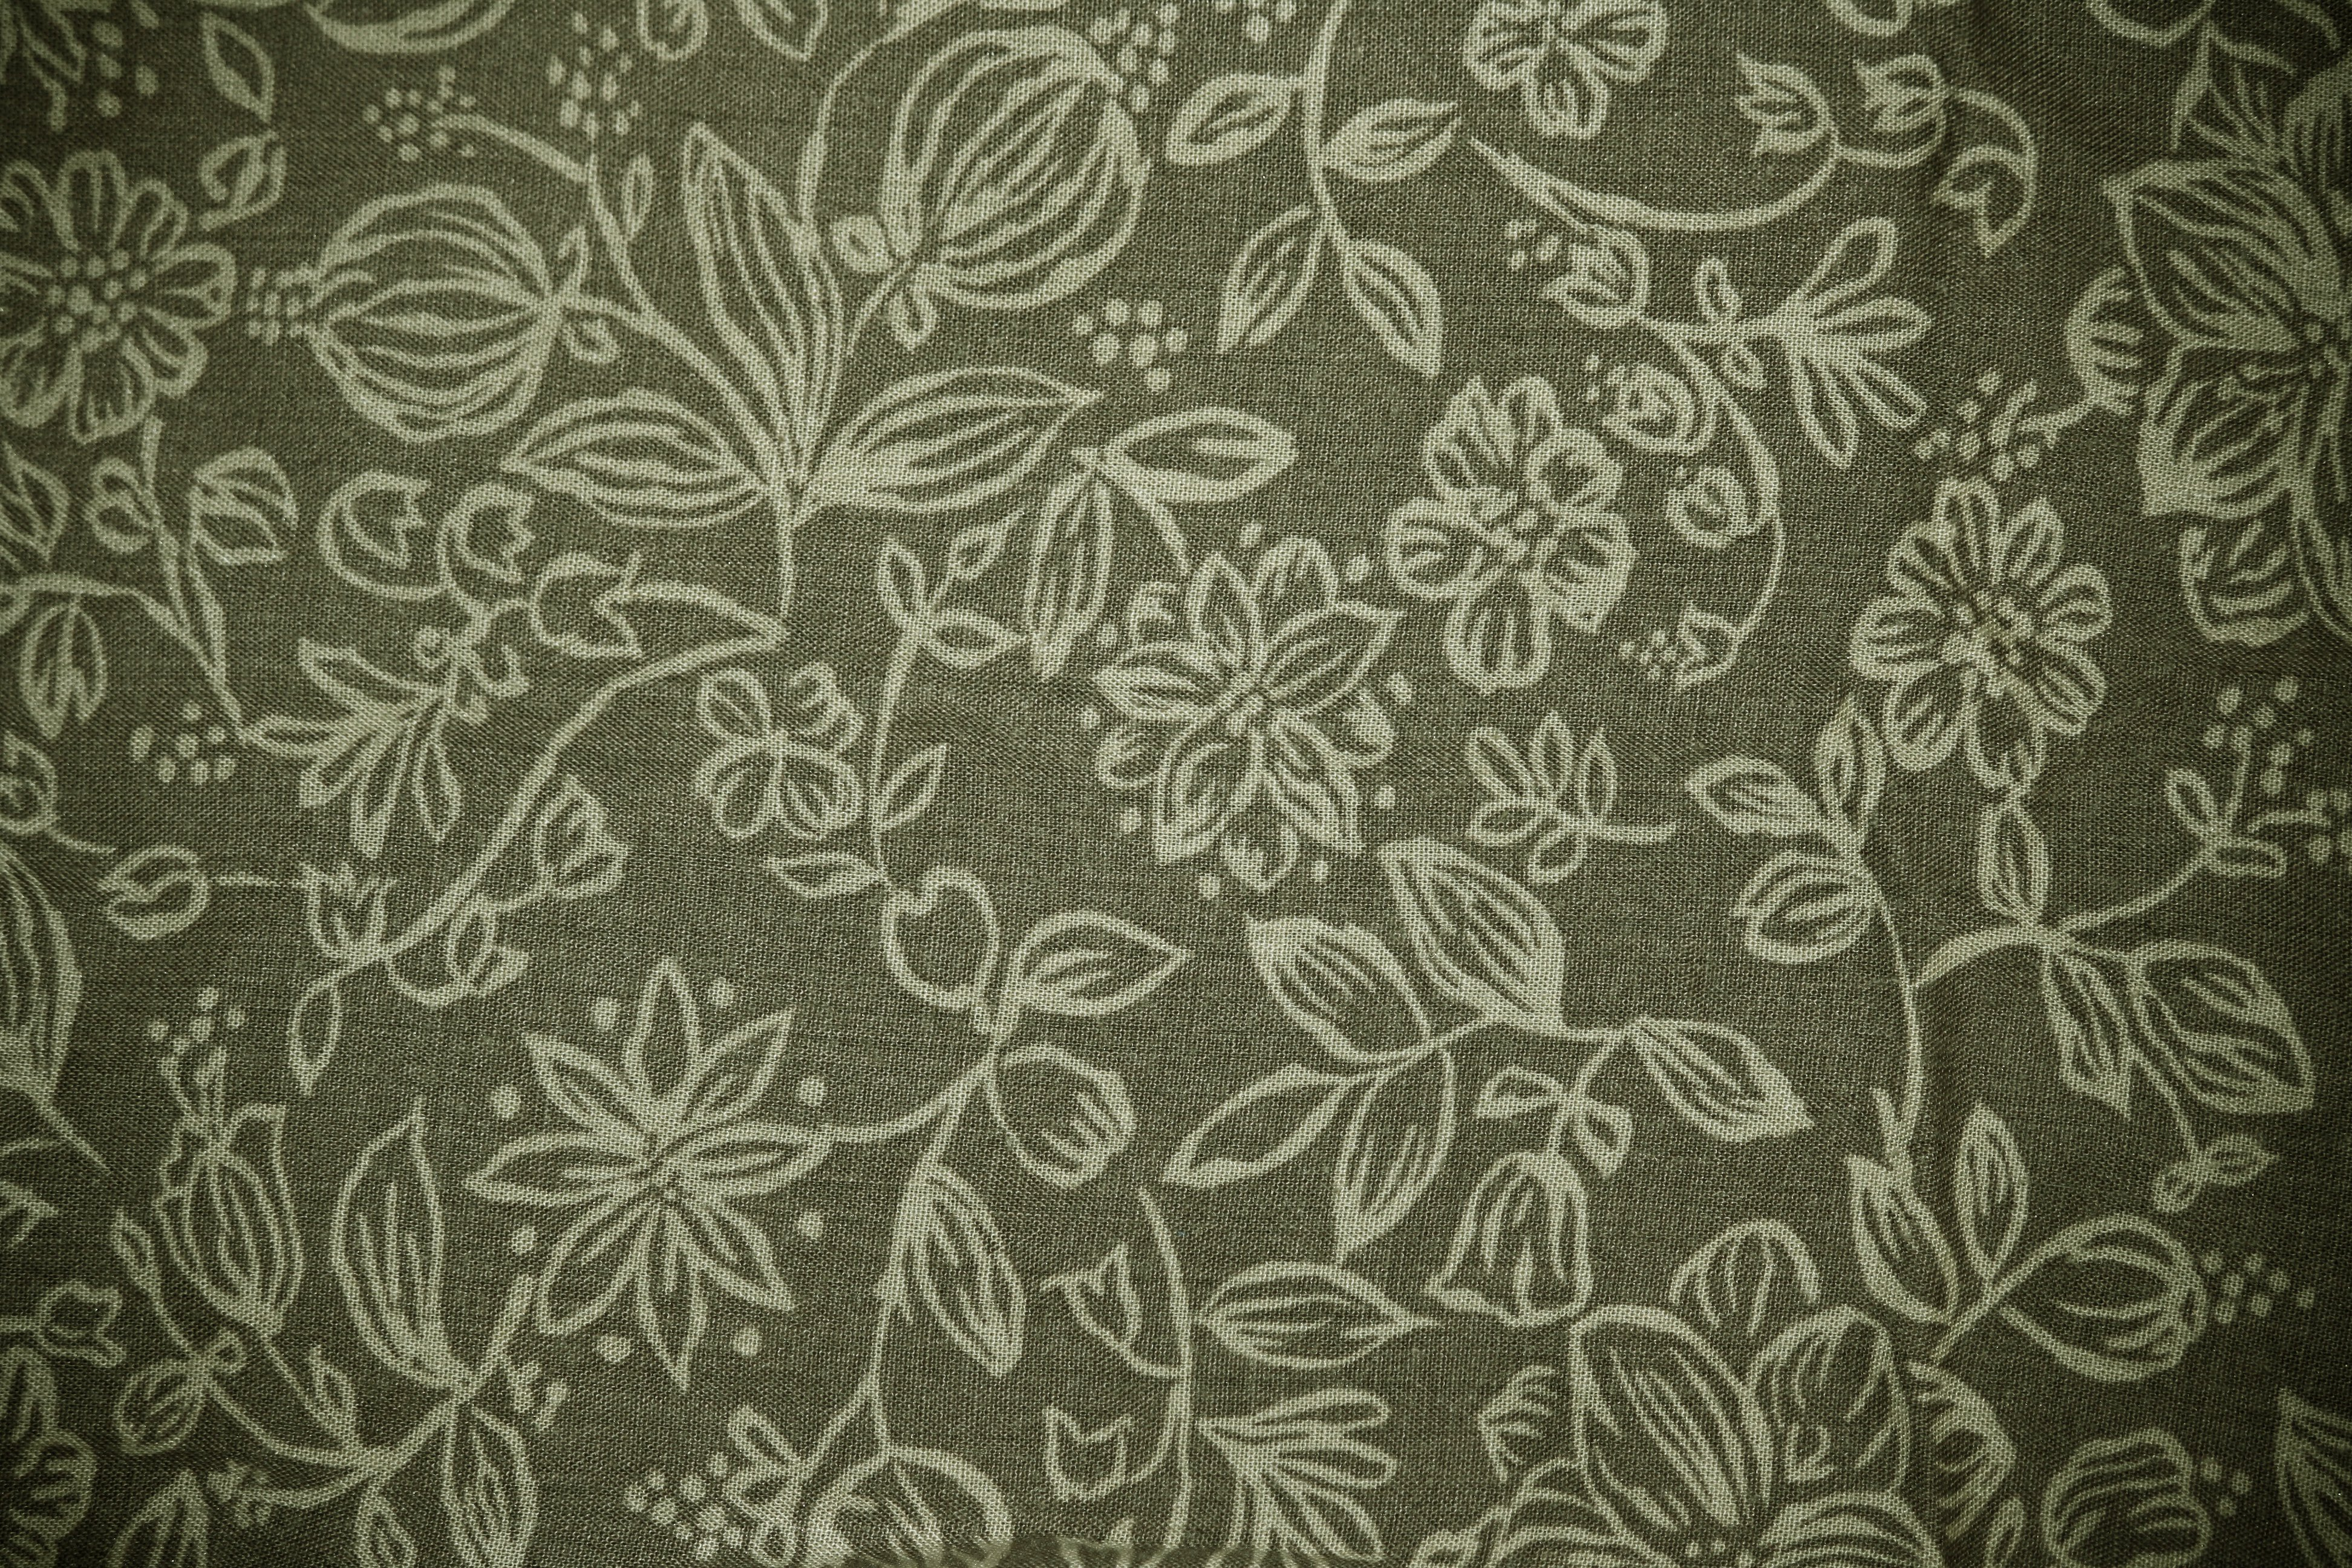 Olive Green Fabric With Floral Pattern Texture